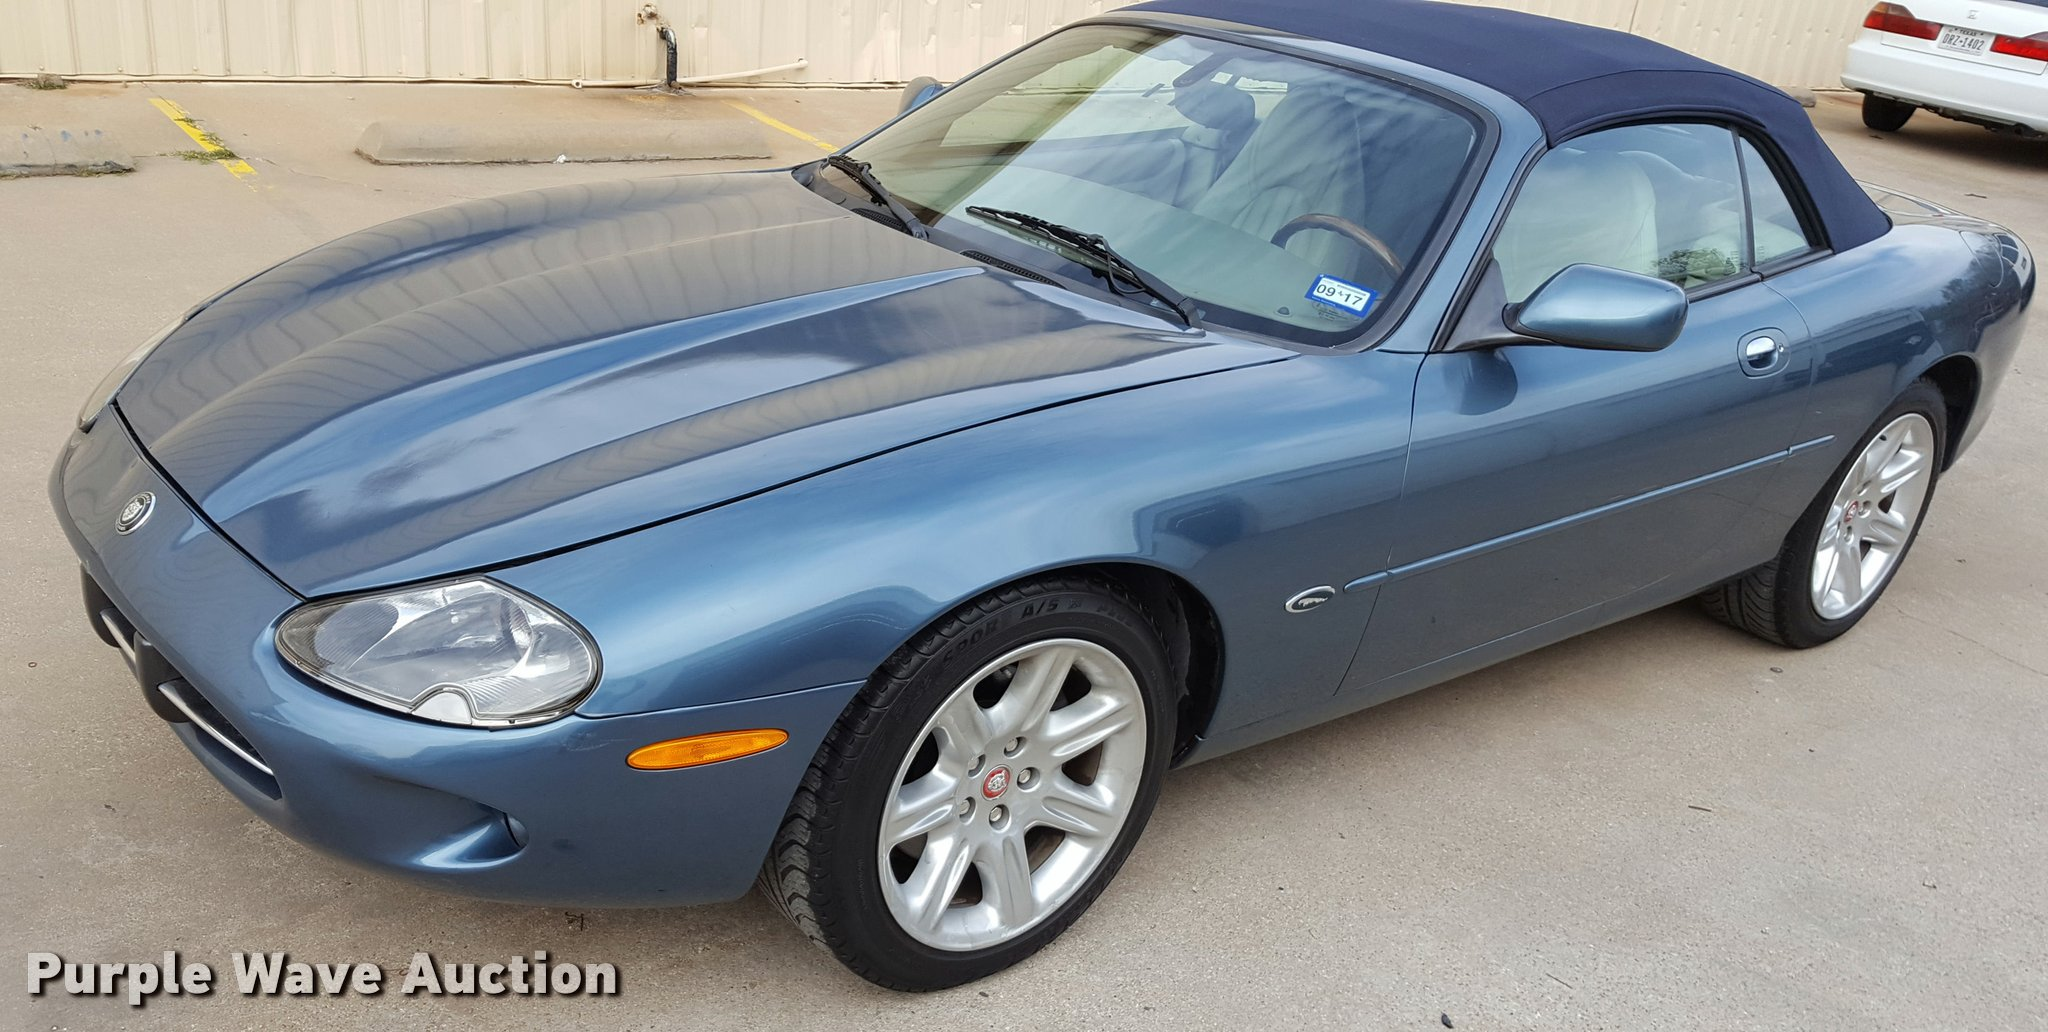 xkr supercharged convertible trade southeast private img fs sale buy jaguar forum for classifieds